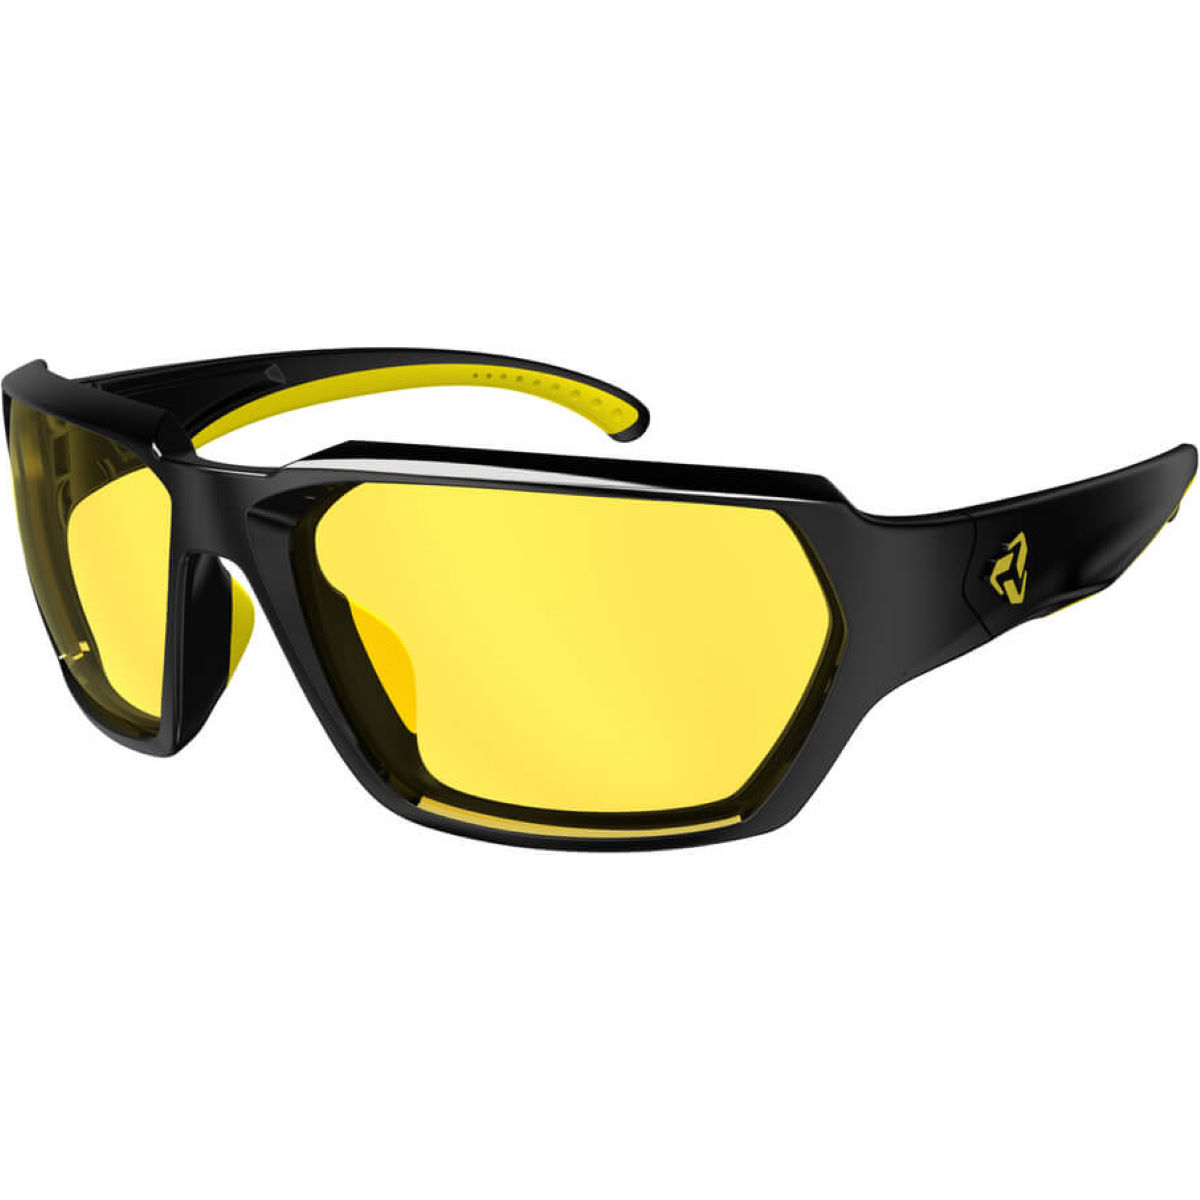 Ryders Eyewear Face Poly Anti-Fog Sunglasses - Gafas de sol